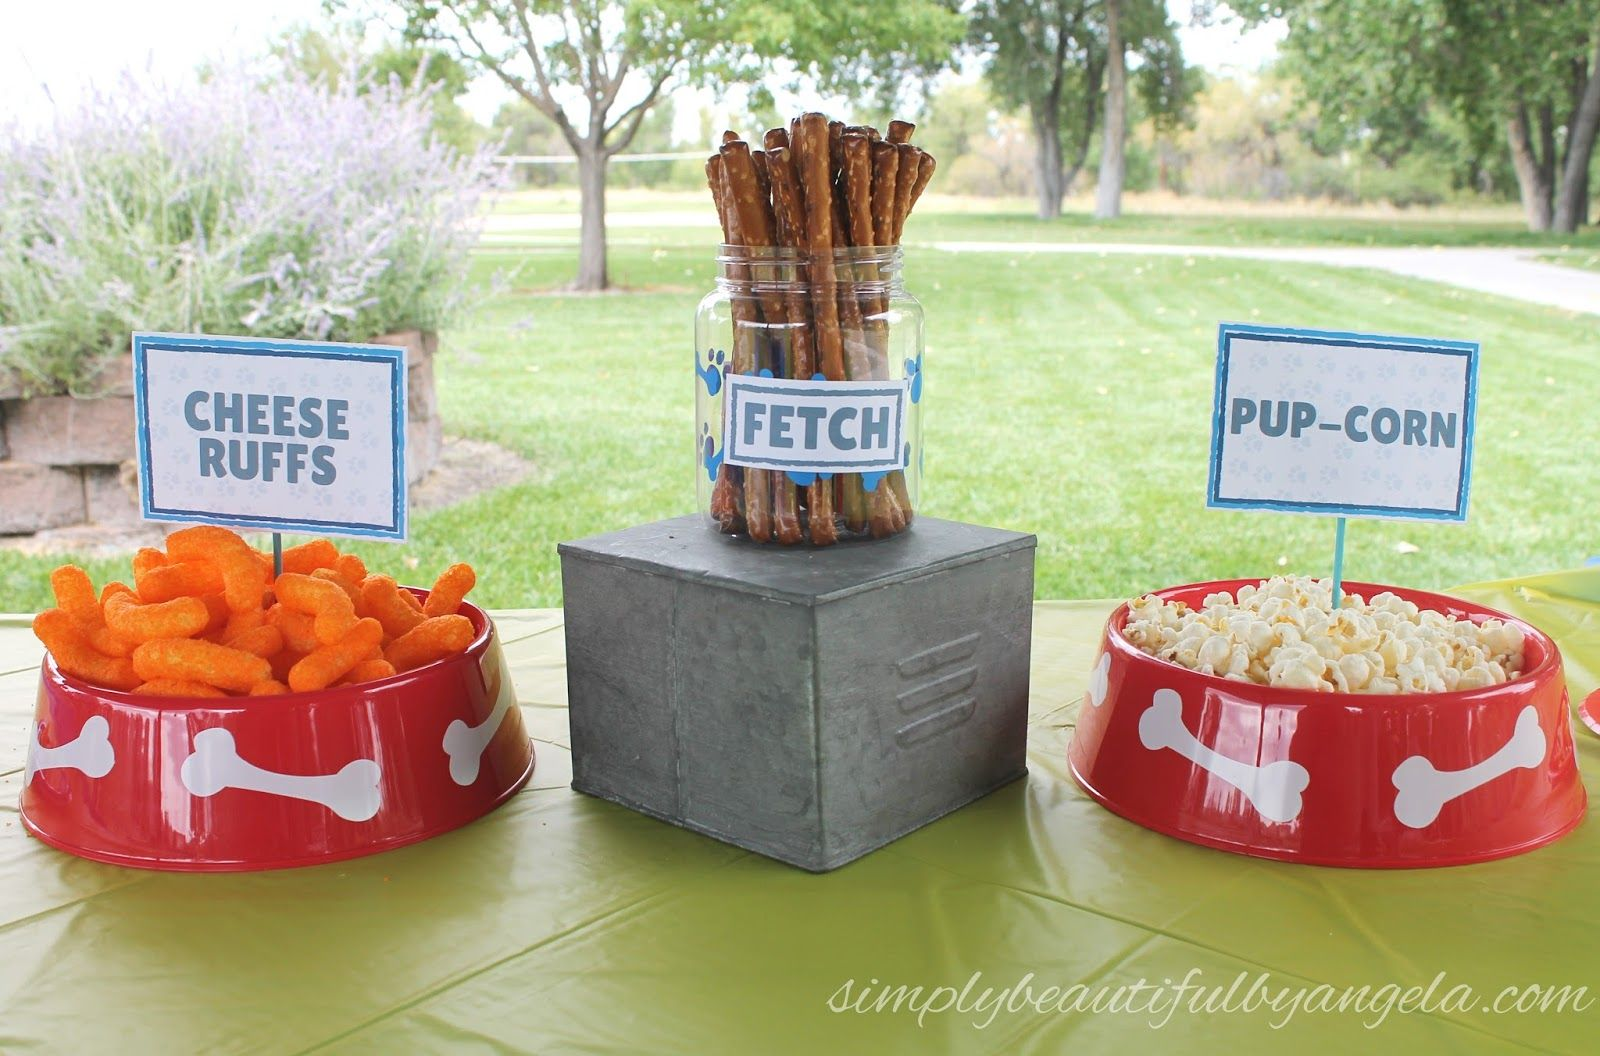 A Paw Patrol Birthday Party - Paw patrol birthday party, Paw patrol birthday, Birthday party snacks, Paw patrol party favors, Clifford birthday party, Birthday dinner party - Hello everyone! This past weekend we celebrated Tristan's FOURTH birthday! Holy cowI have a four year old  It's still sinking in  When I asked Tristan what kind of party he wanted, with no